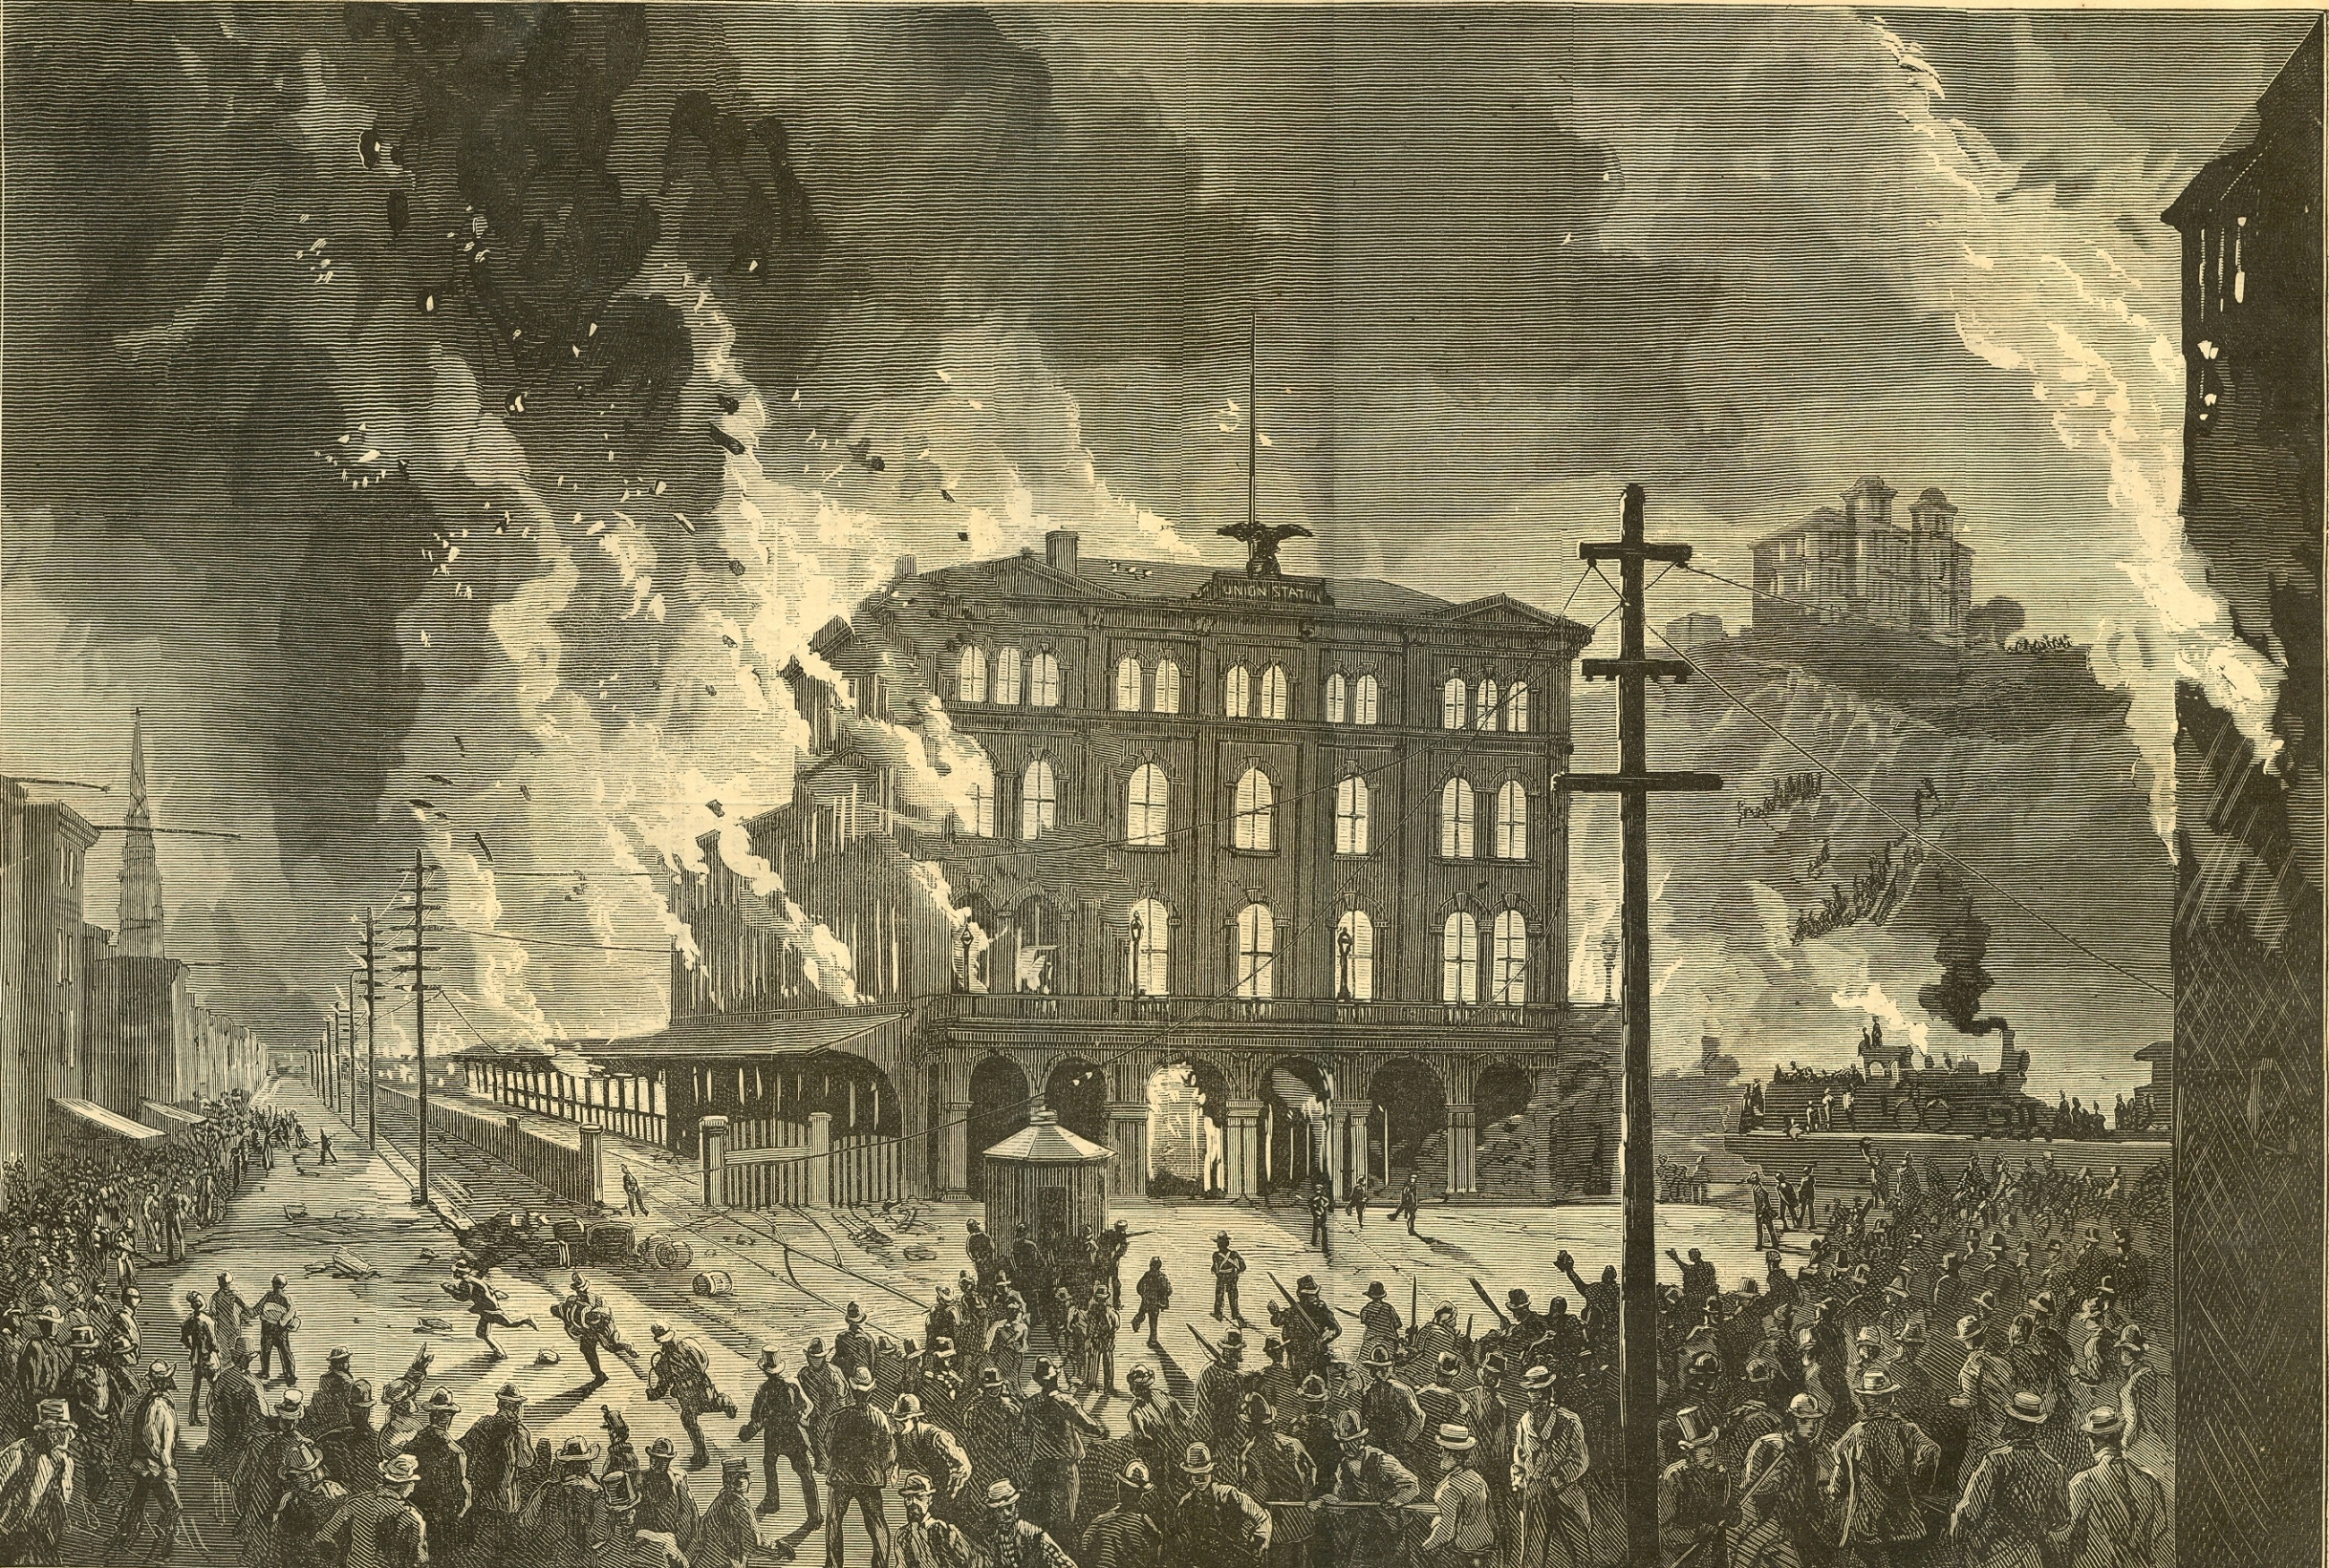 Harpers_8_11_1877_Destruction_of_the_Union_Depot